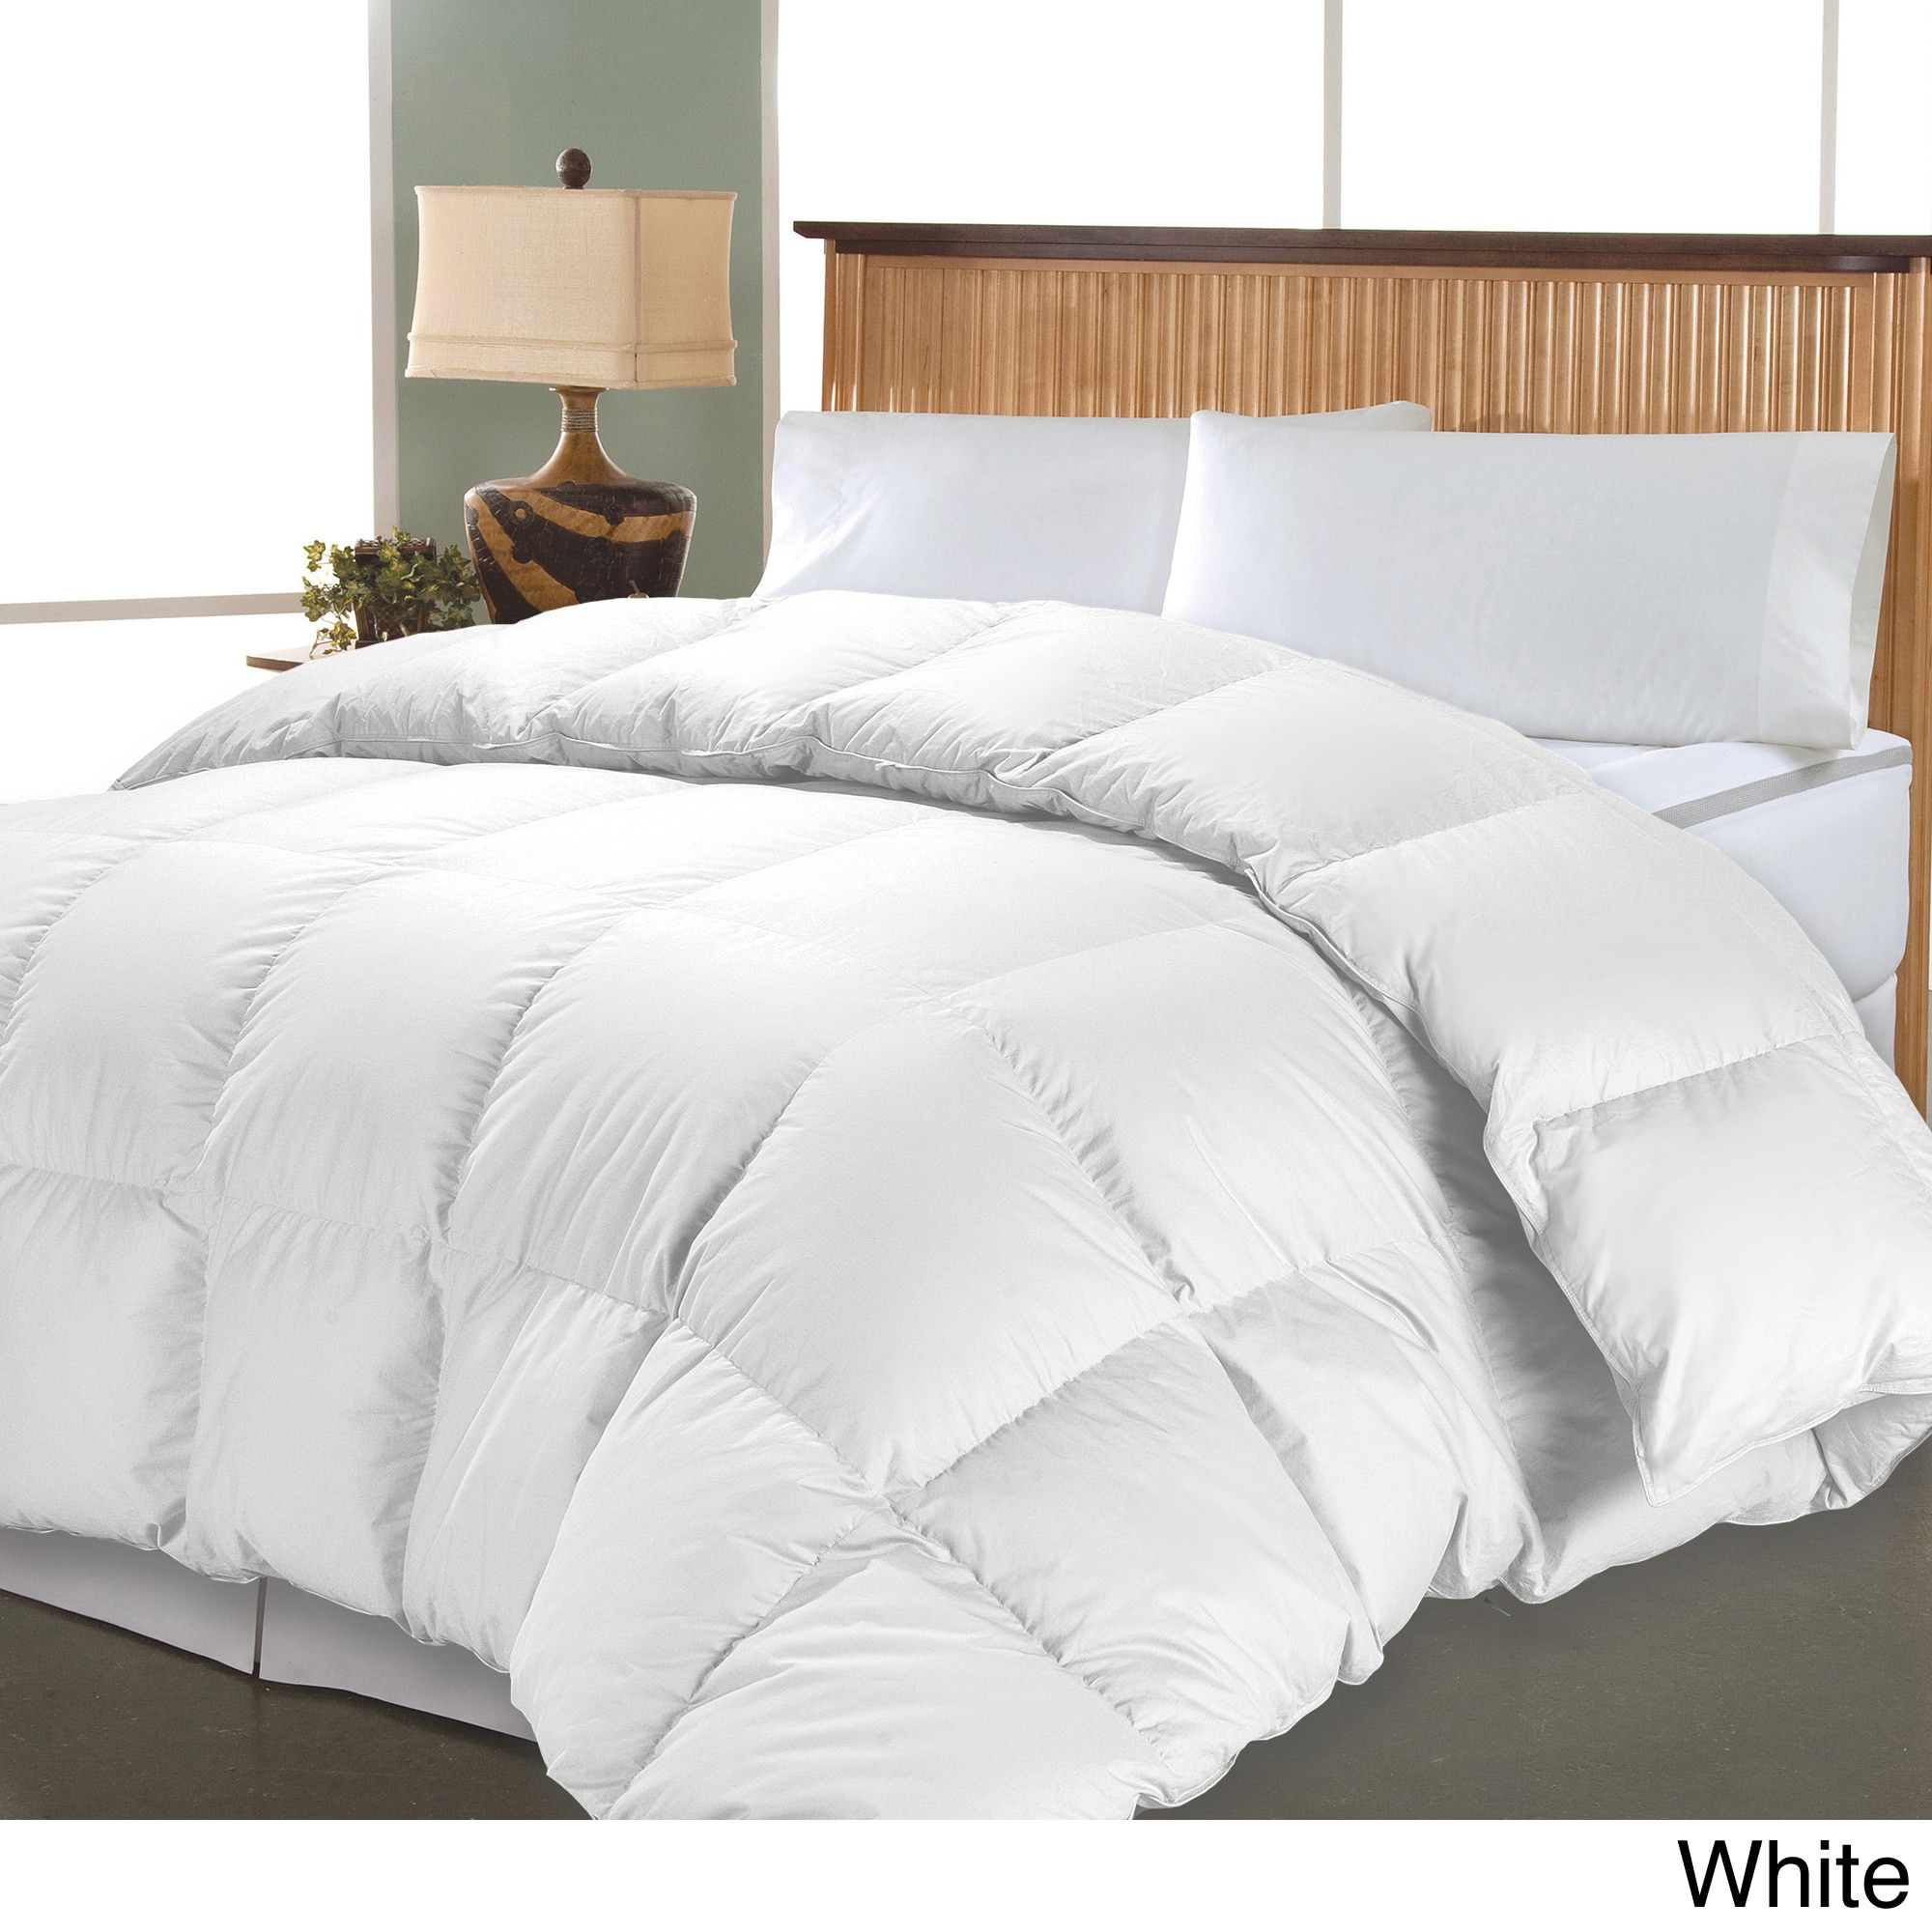 alternative number bedding by free ternative shipping down sleep product goodnight welspun al overstock bath today comforter